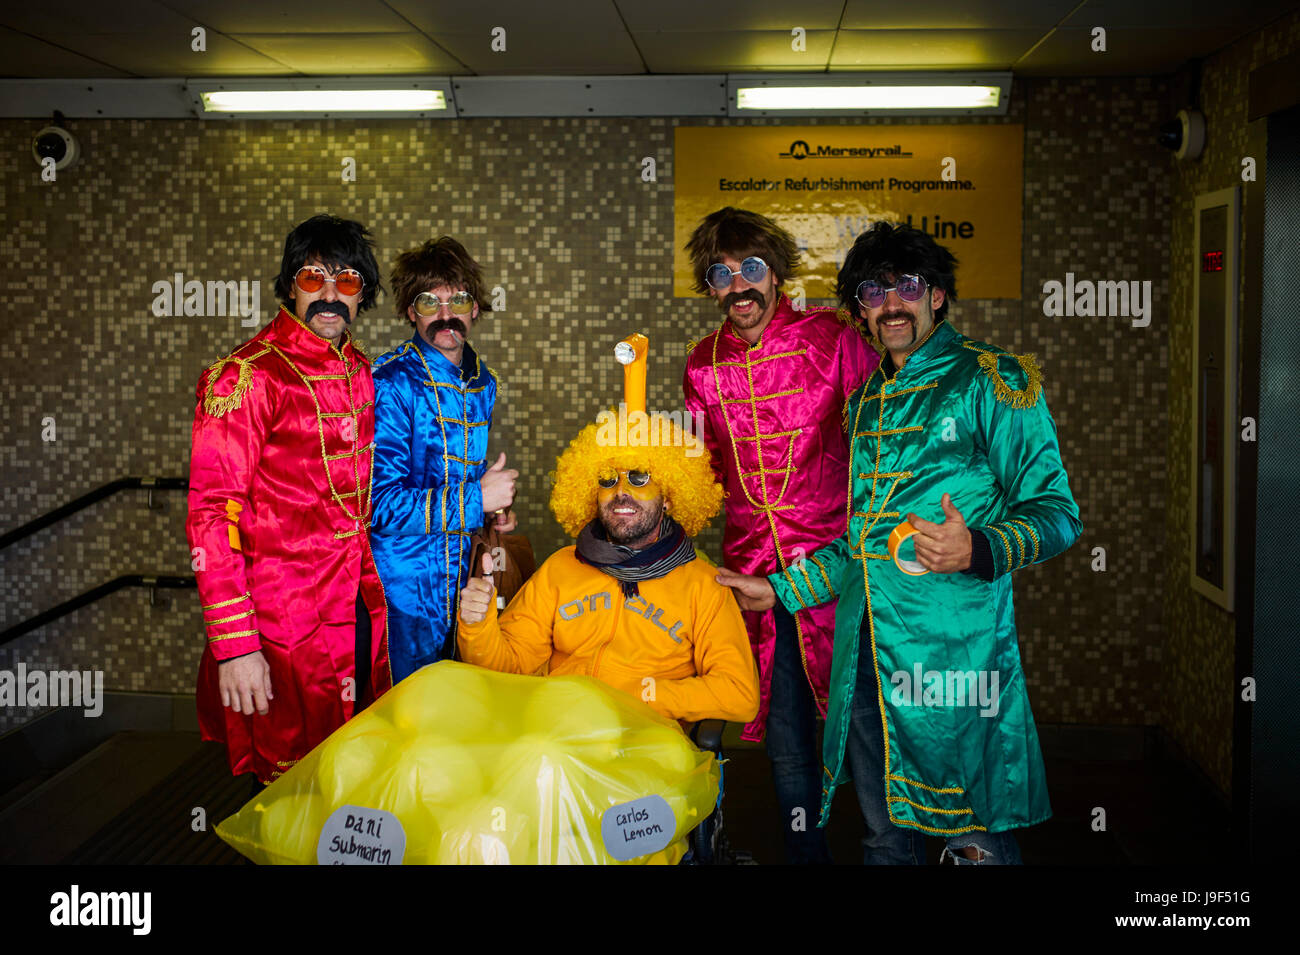 Sgt Pepper High Resolution Stock Photography And Images Alamy